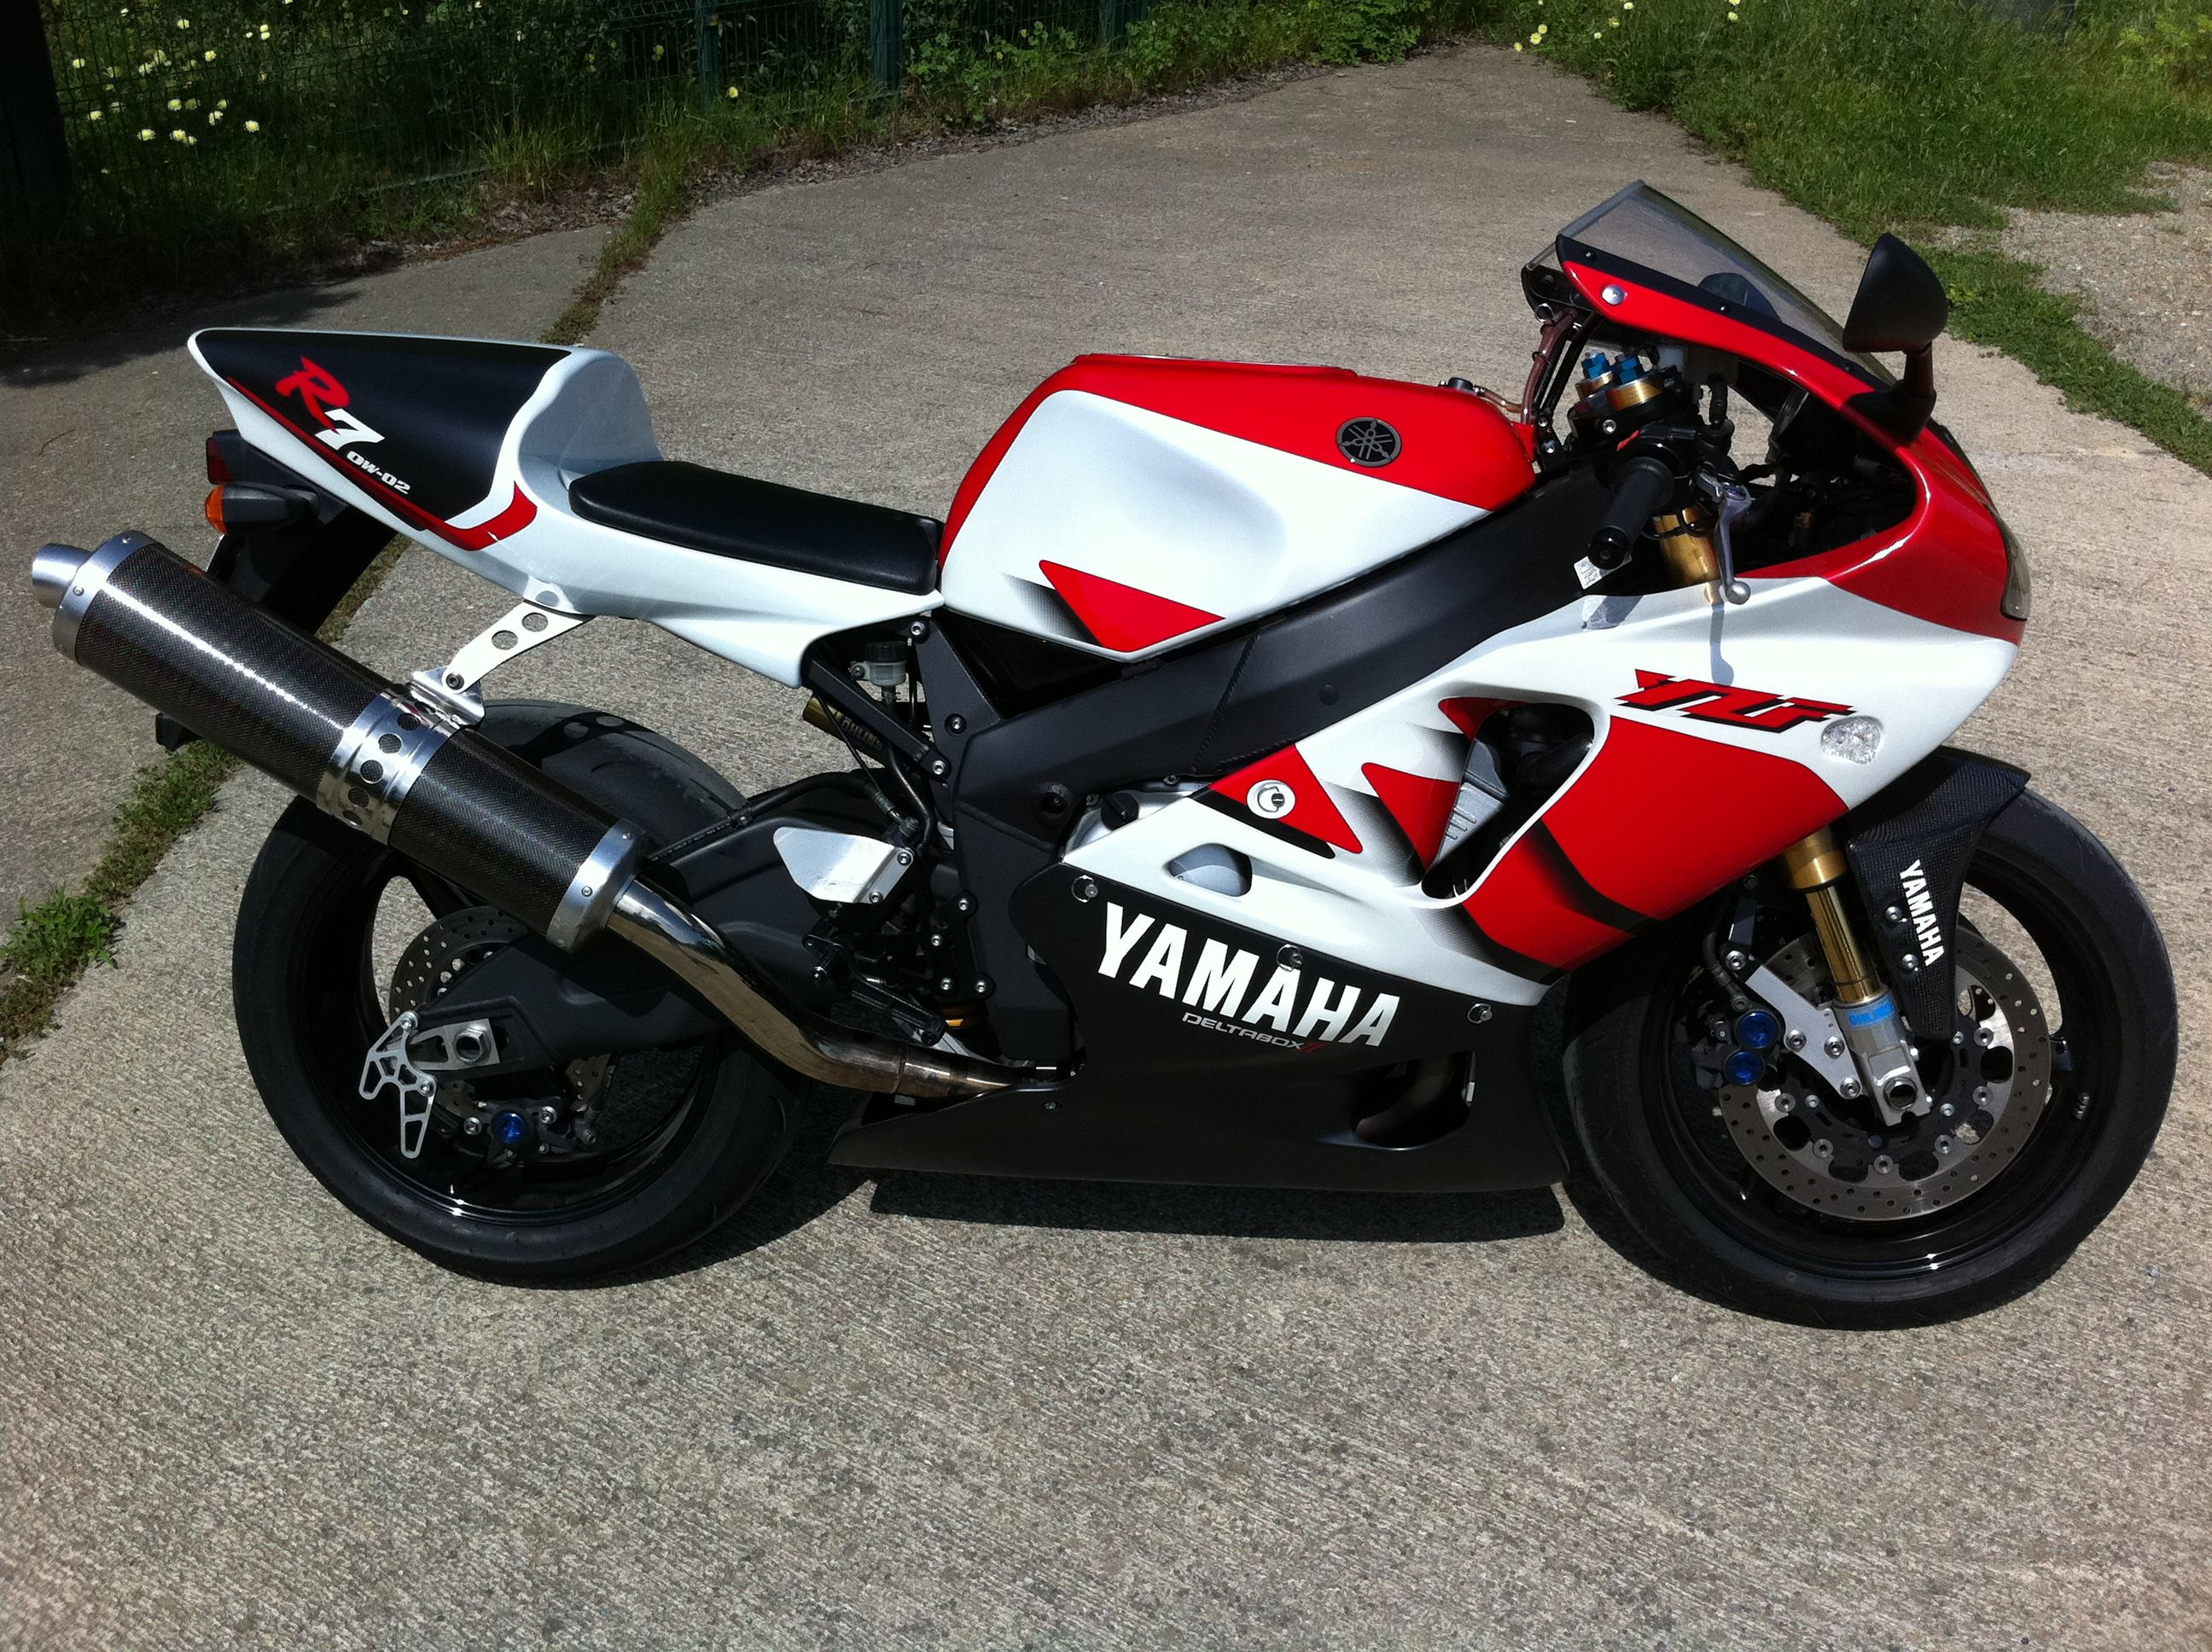 Yamaha Owo 02 R7 This Is The Motorcycle That Haga Used In Sbk Only 500 Units In The World On In My Gara Sports Bikes Motorcycles Racing Bikes Motorcycle